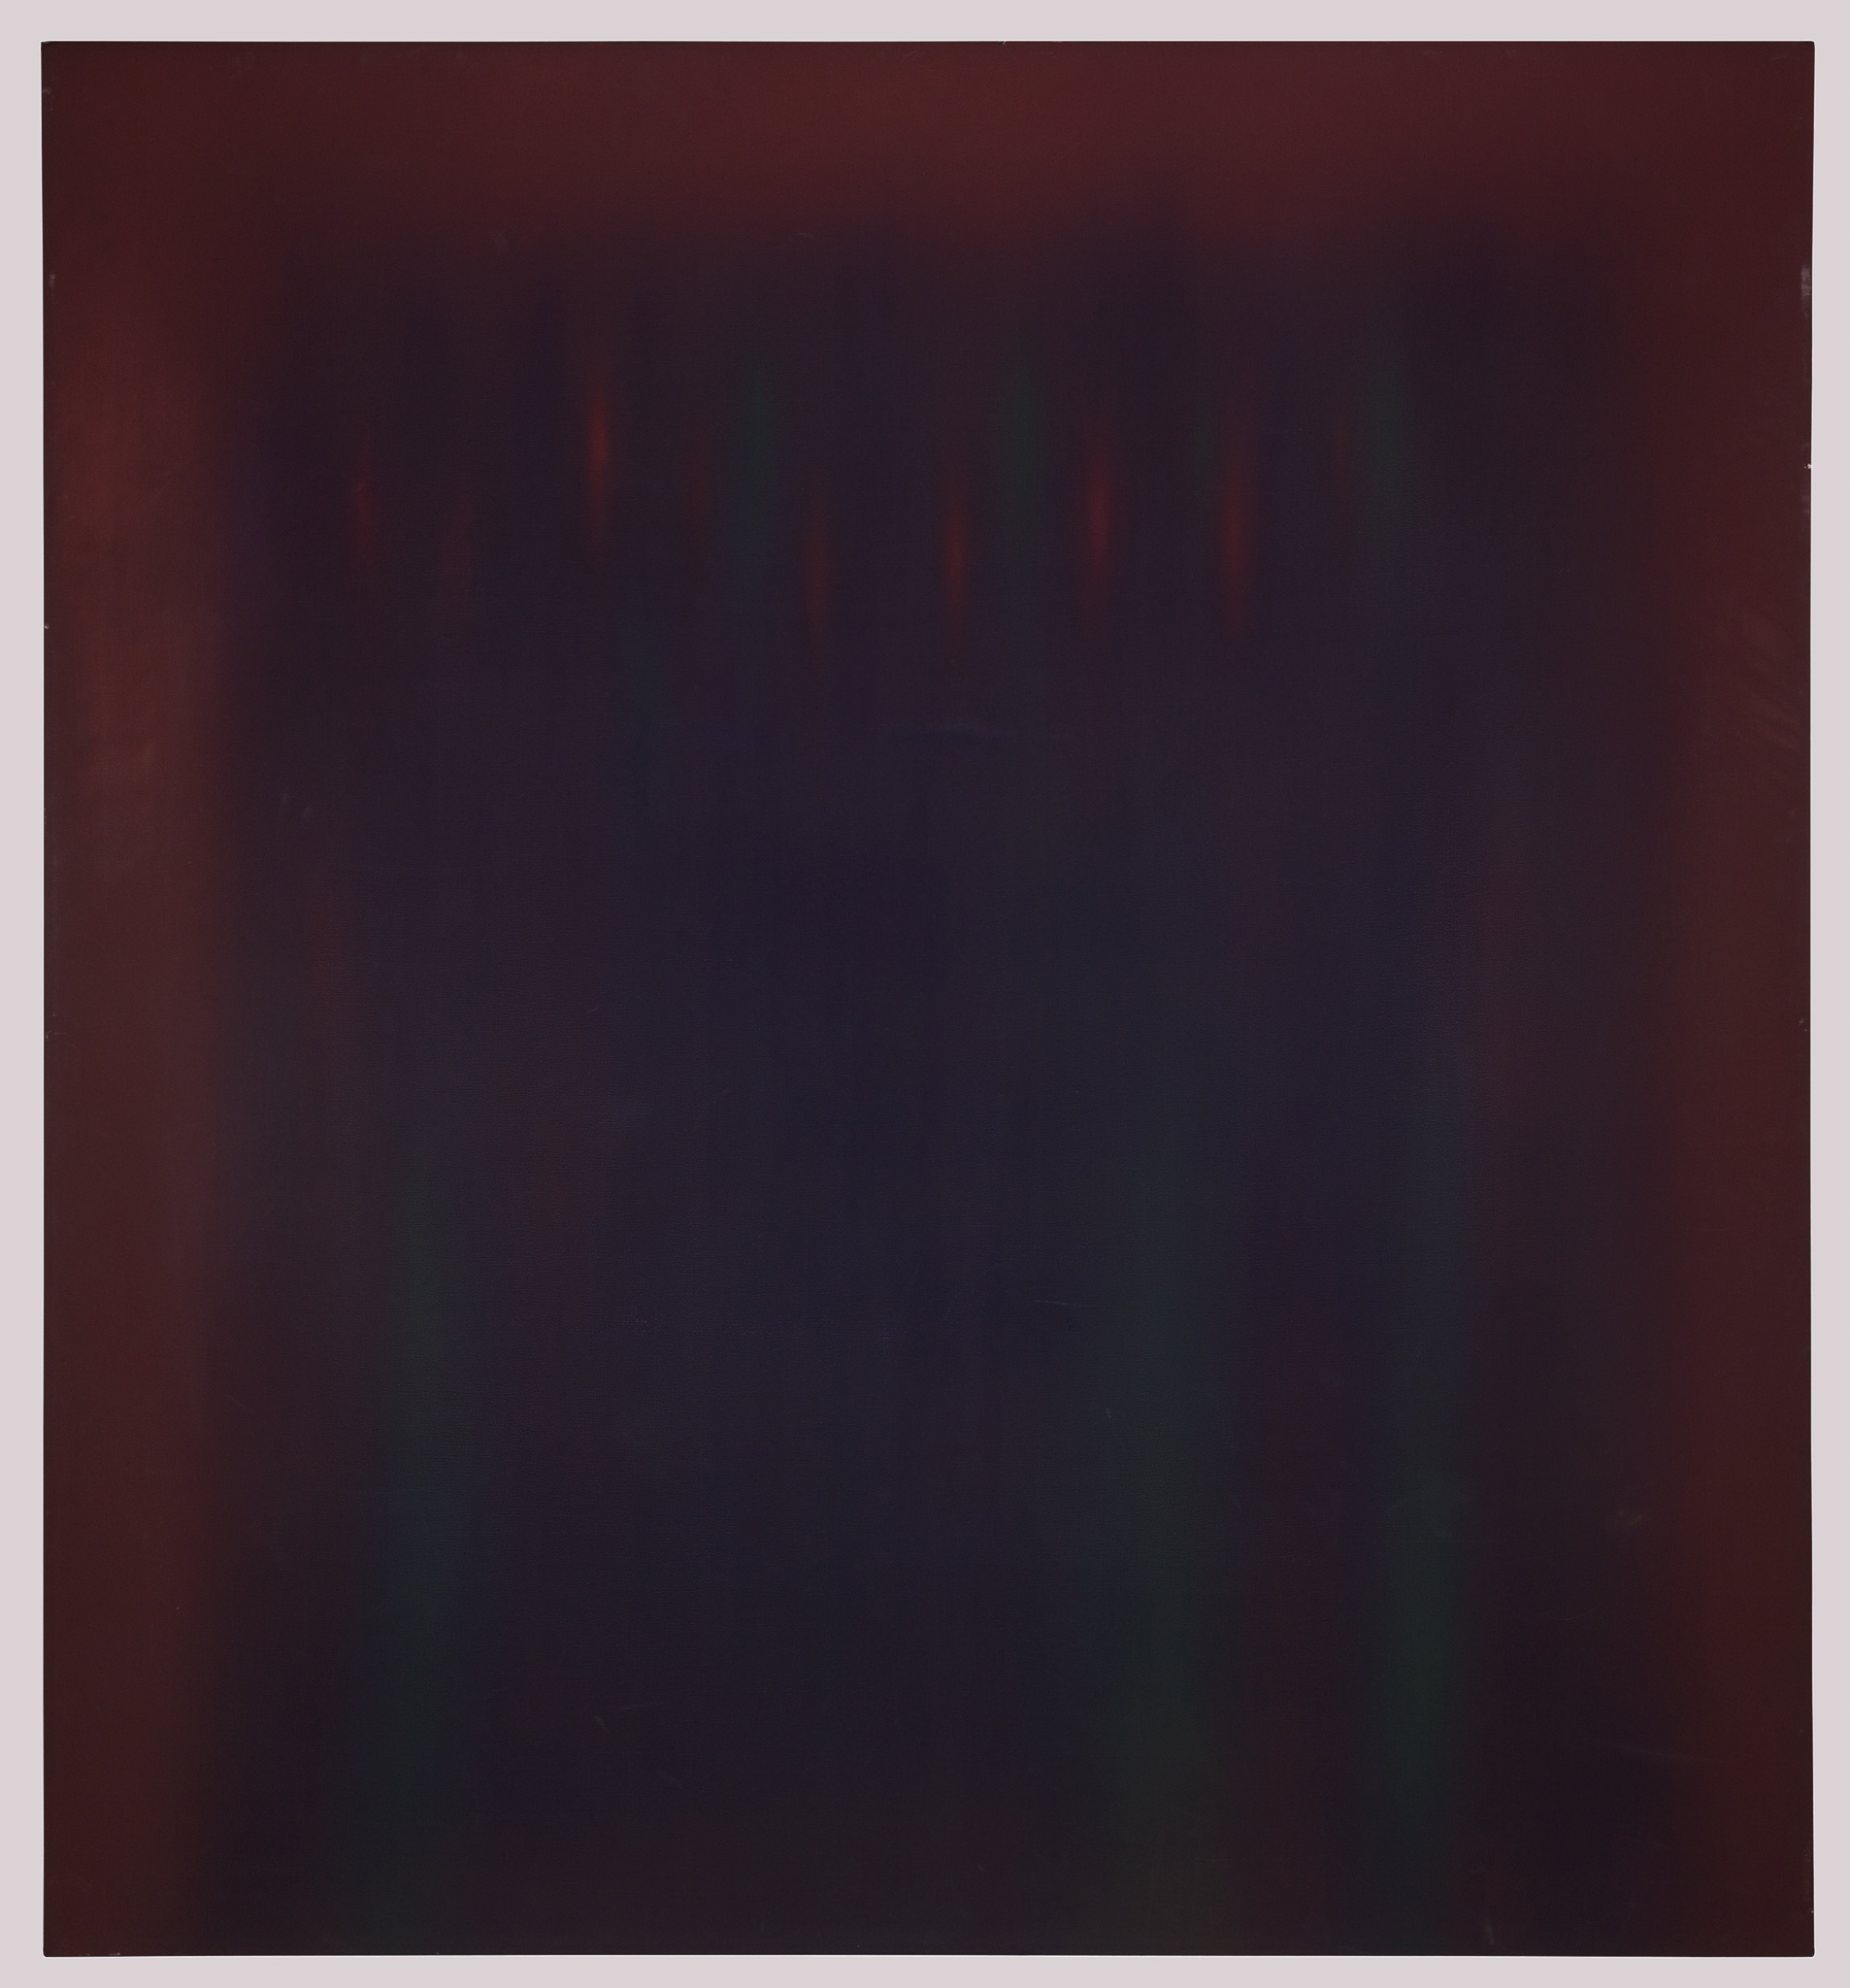 Natvar Bhavsar, Untitled 1984. Sold For $15,000 At Capsule Gallery Auction